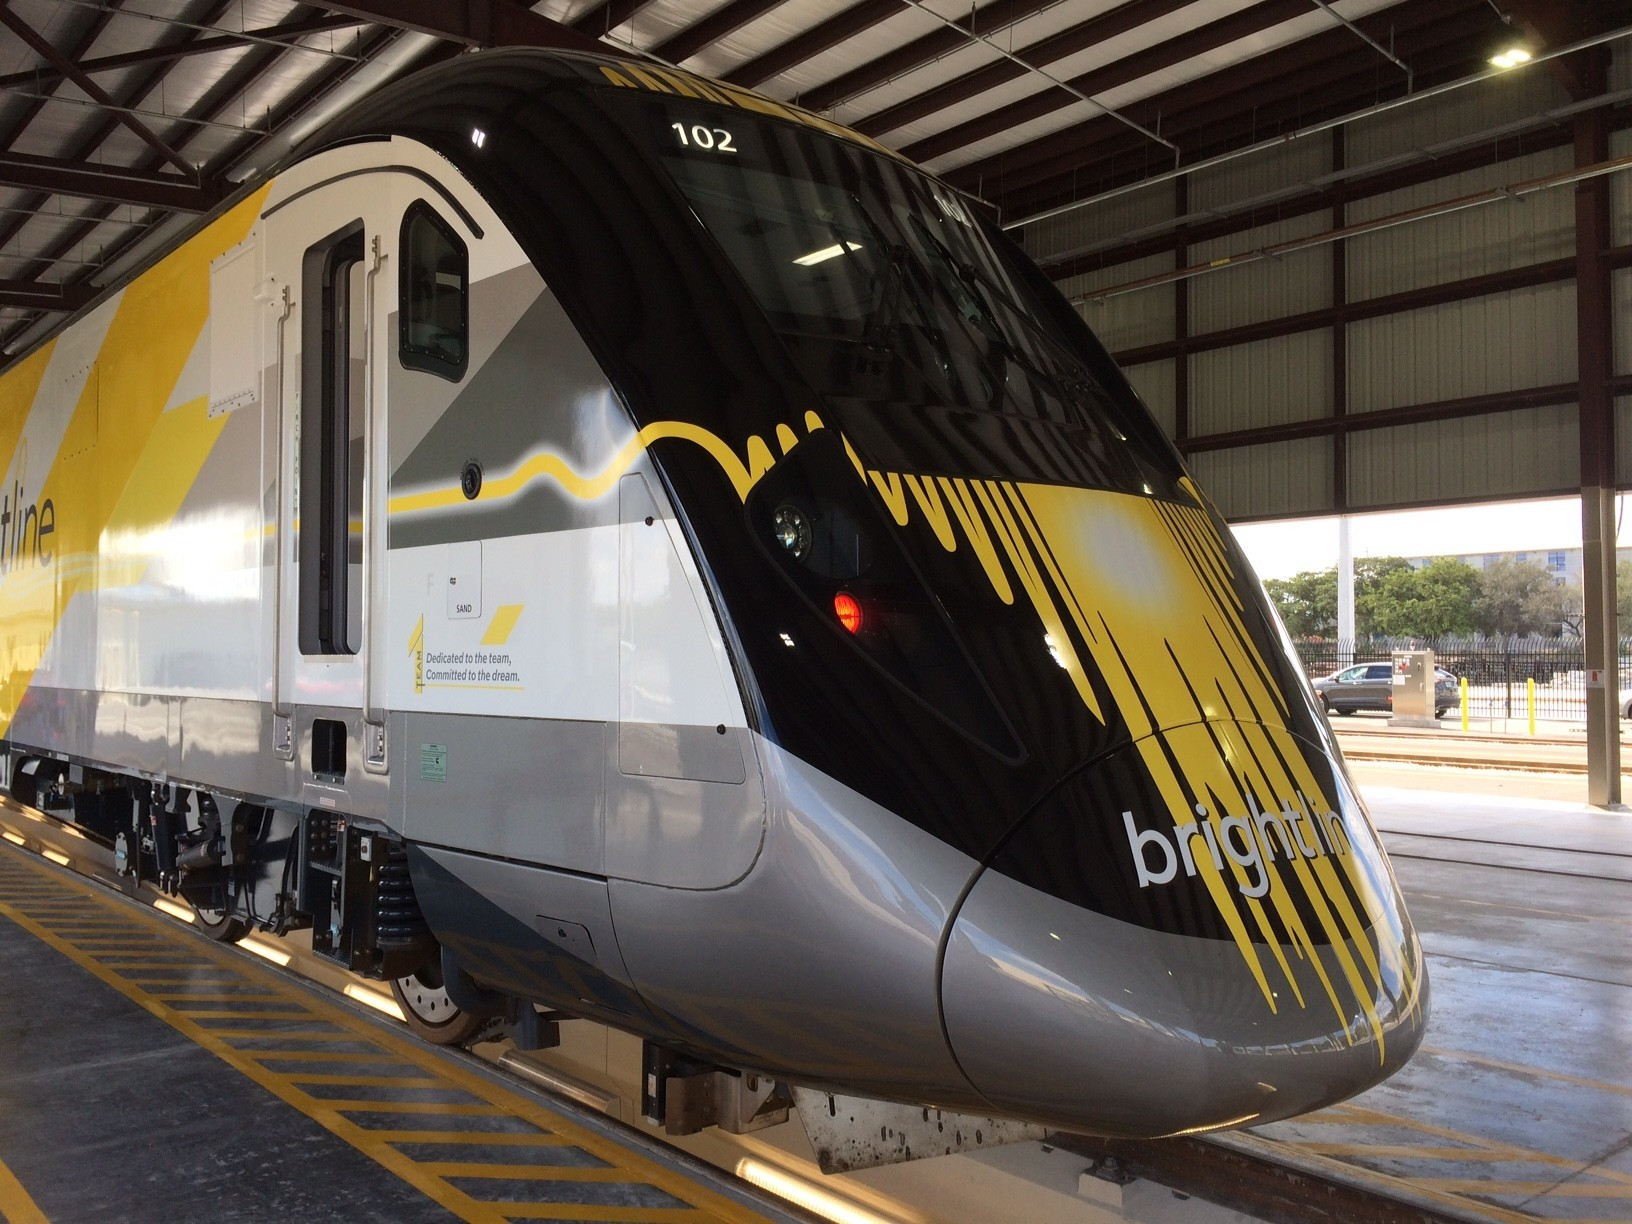 south florida gets first peek at brightline express train